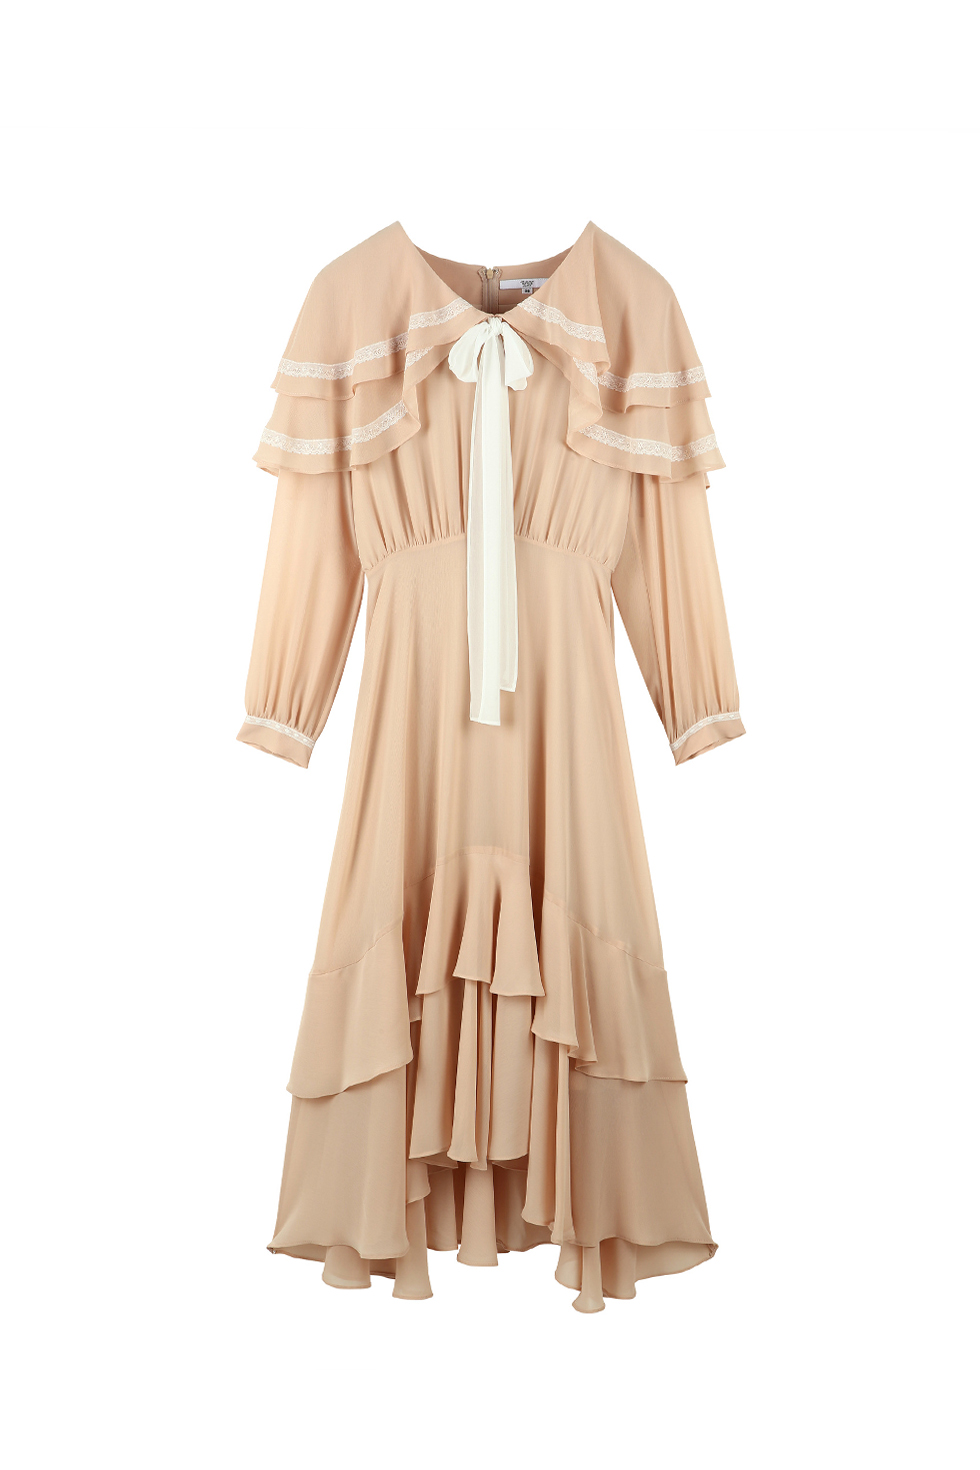 CAPE RUFFLE DRESS - BEIGE